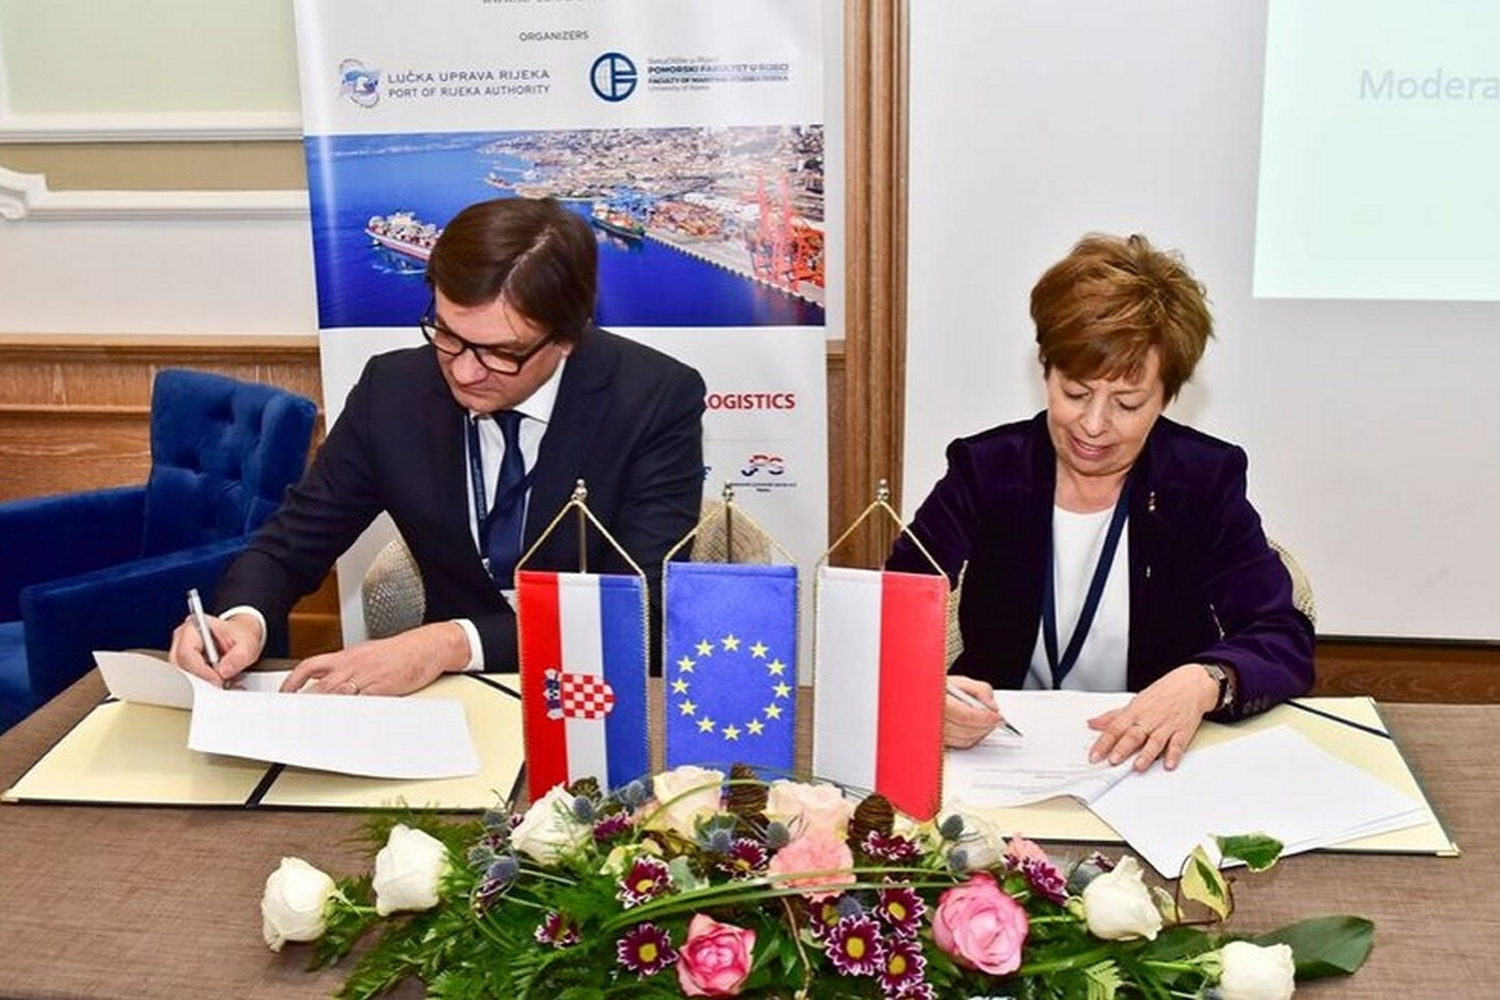 Gdańsk and Rijeka enter into a co-op